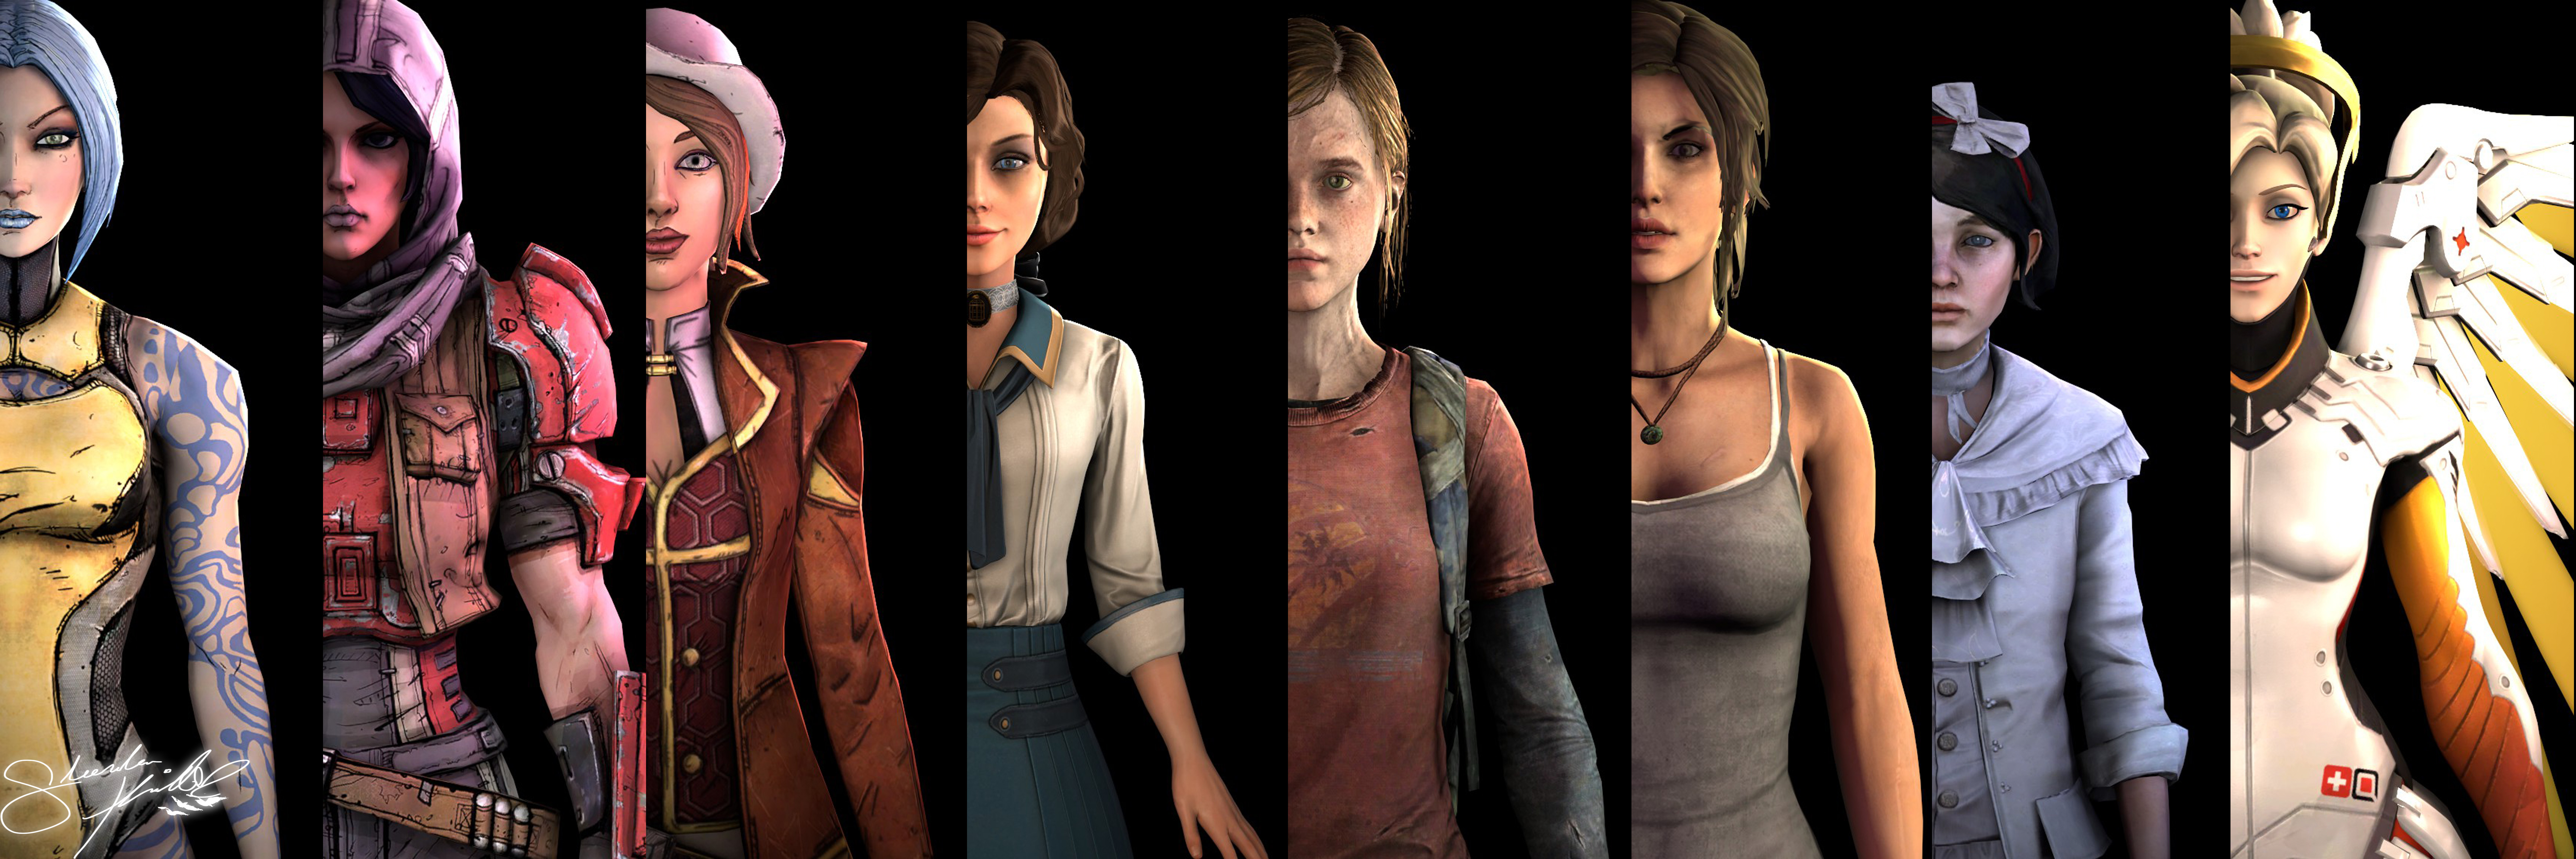 Female characters games